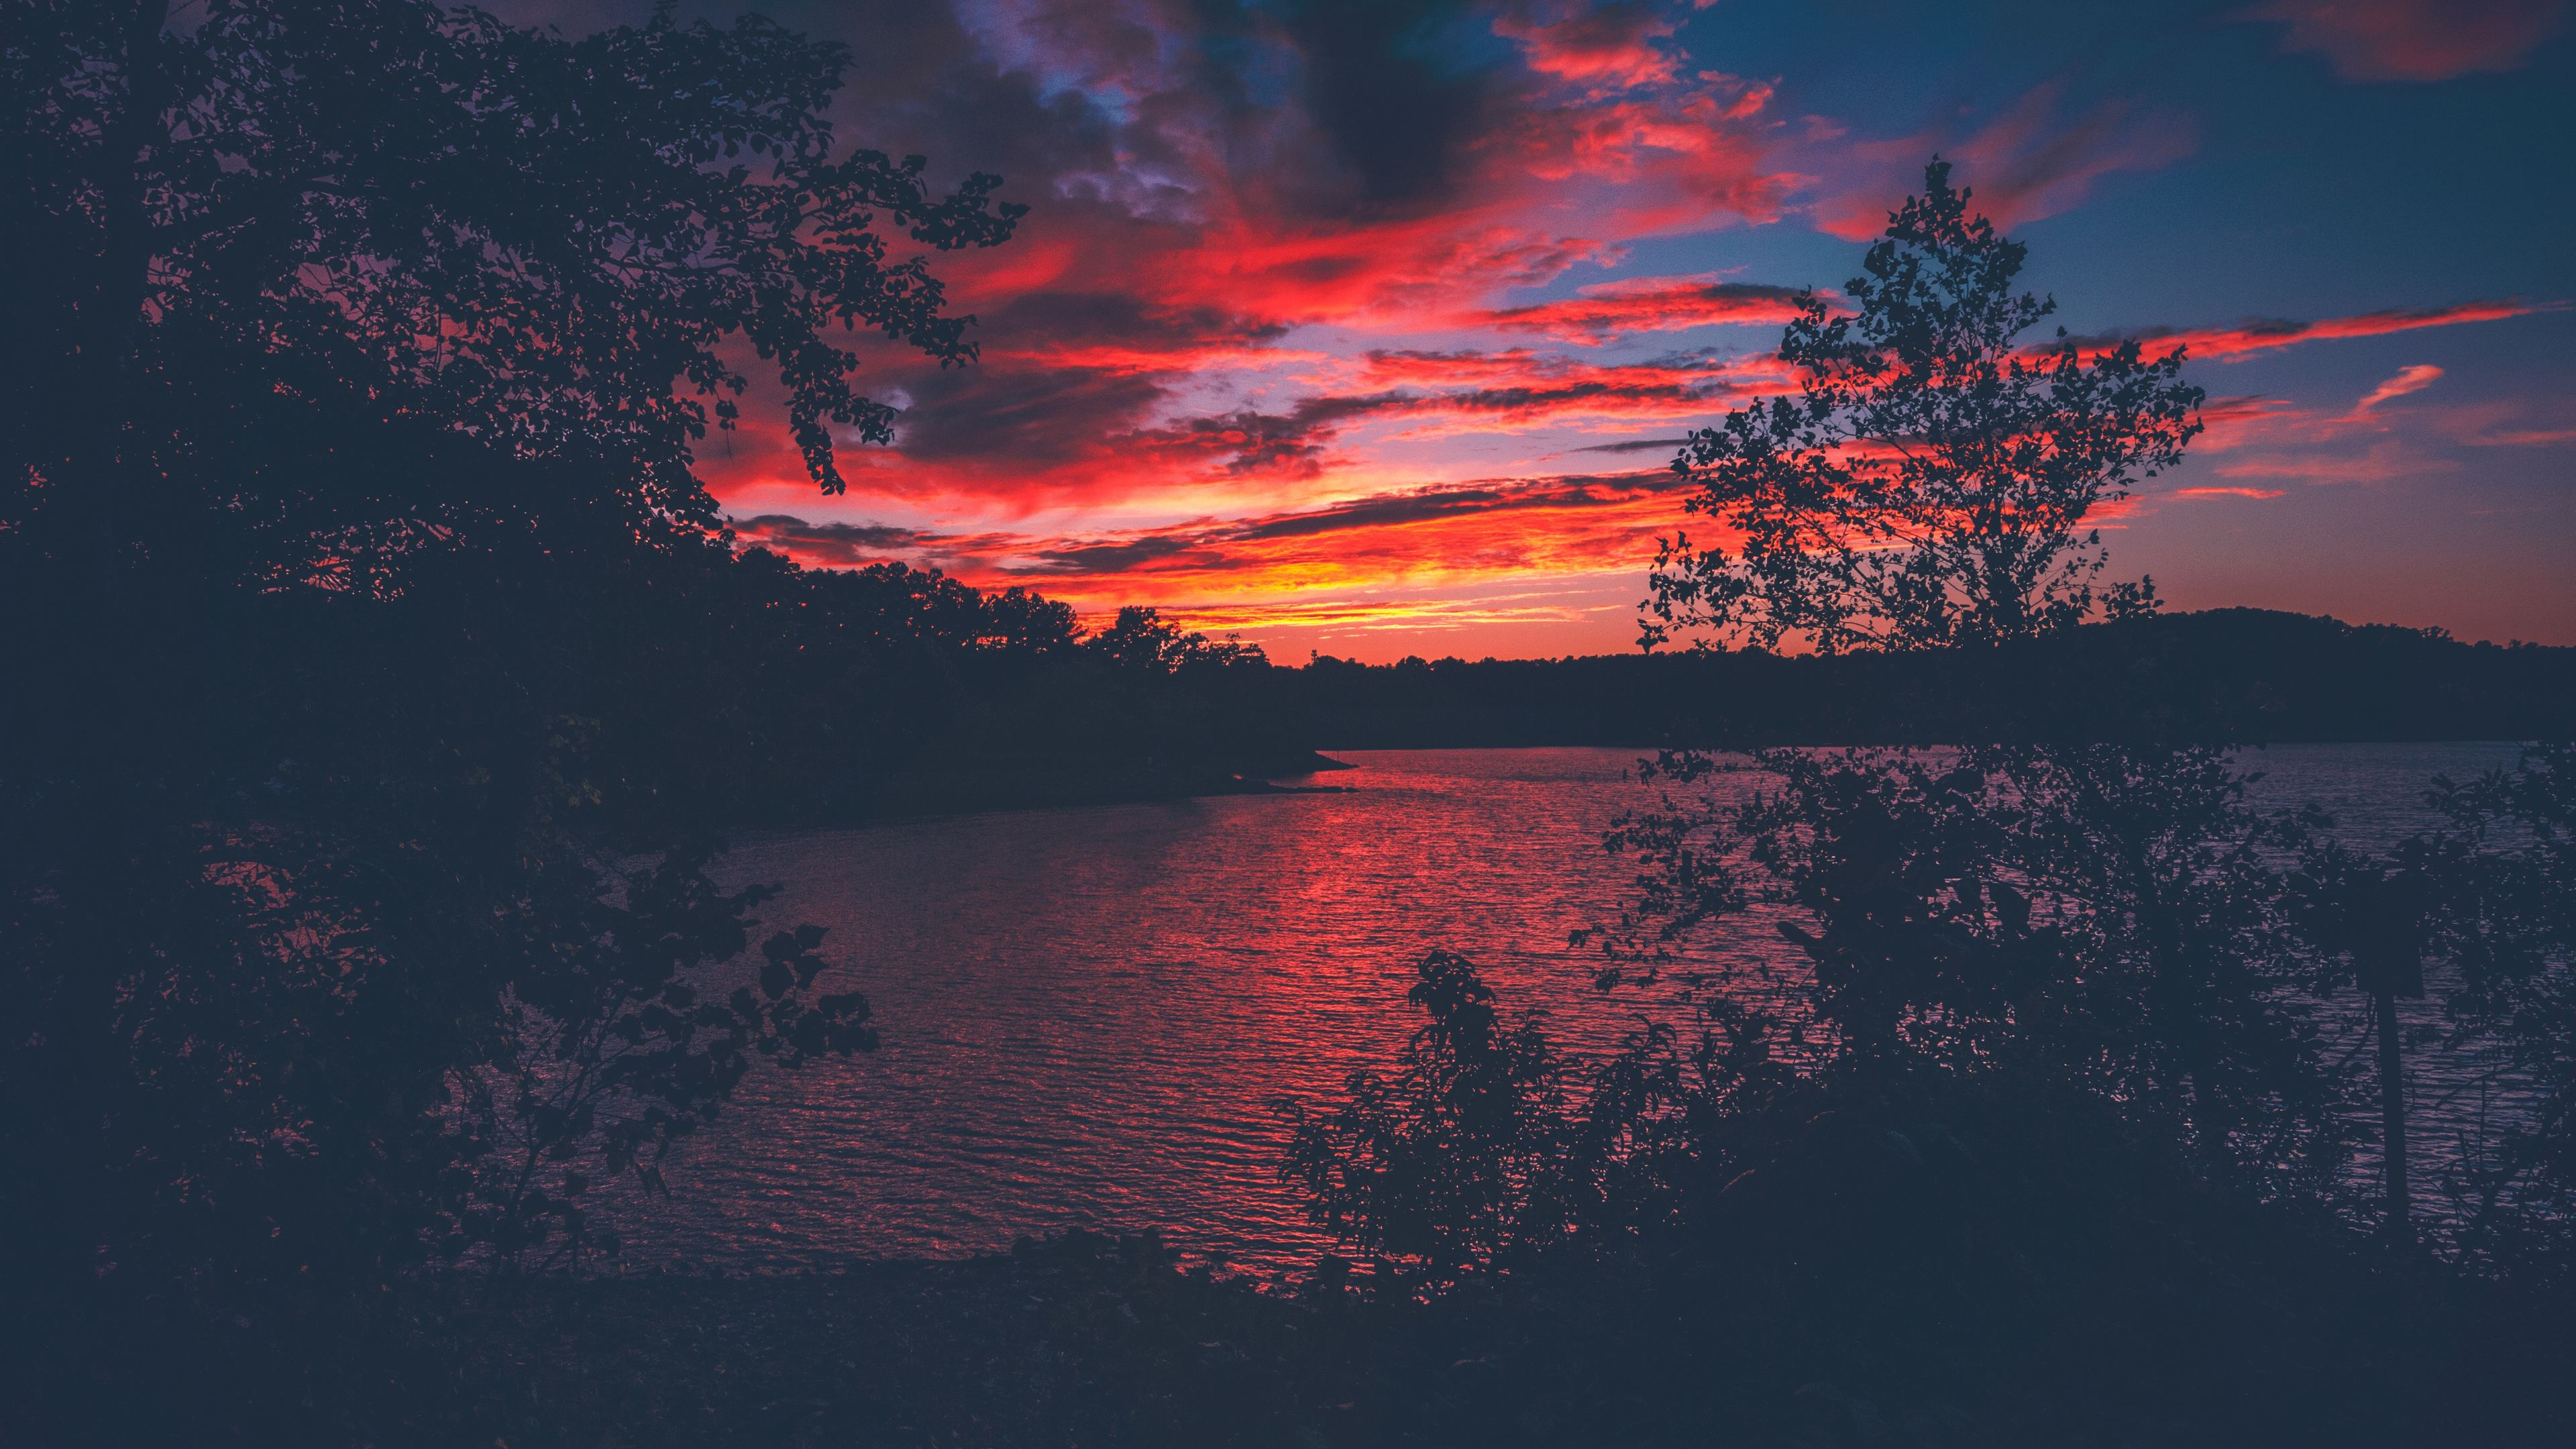 red evening sunset lake view from forest woods 4k 1540142897 - Red Evening Sunset Lake View From Forest Woods 4k - sunset wallpapers, nature wallpapers, lake wallpapers, hd-wallpapers, forest wallpapers, evening wallpapers, dawn wallpapers, 4k-wallpapers